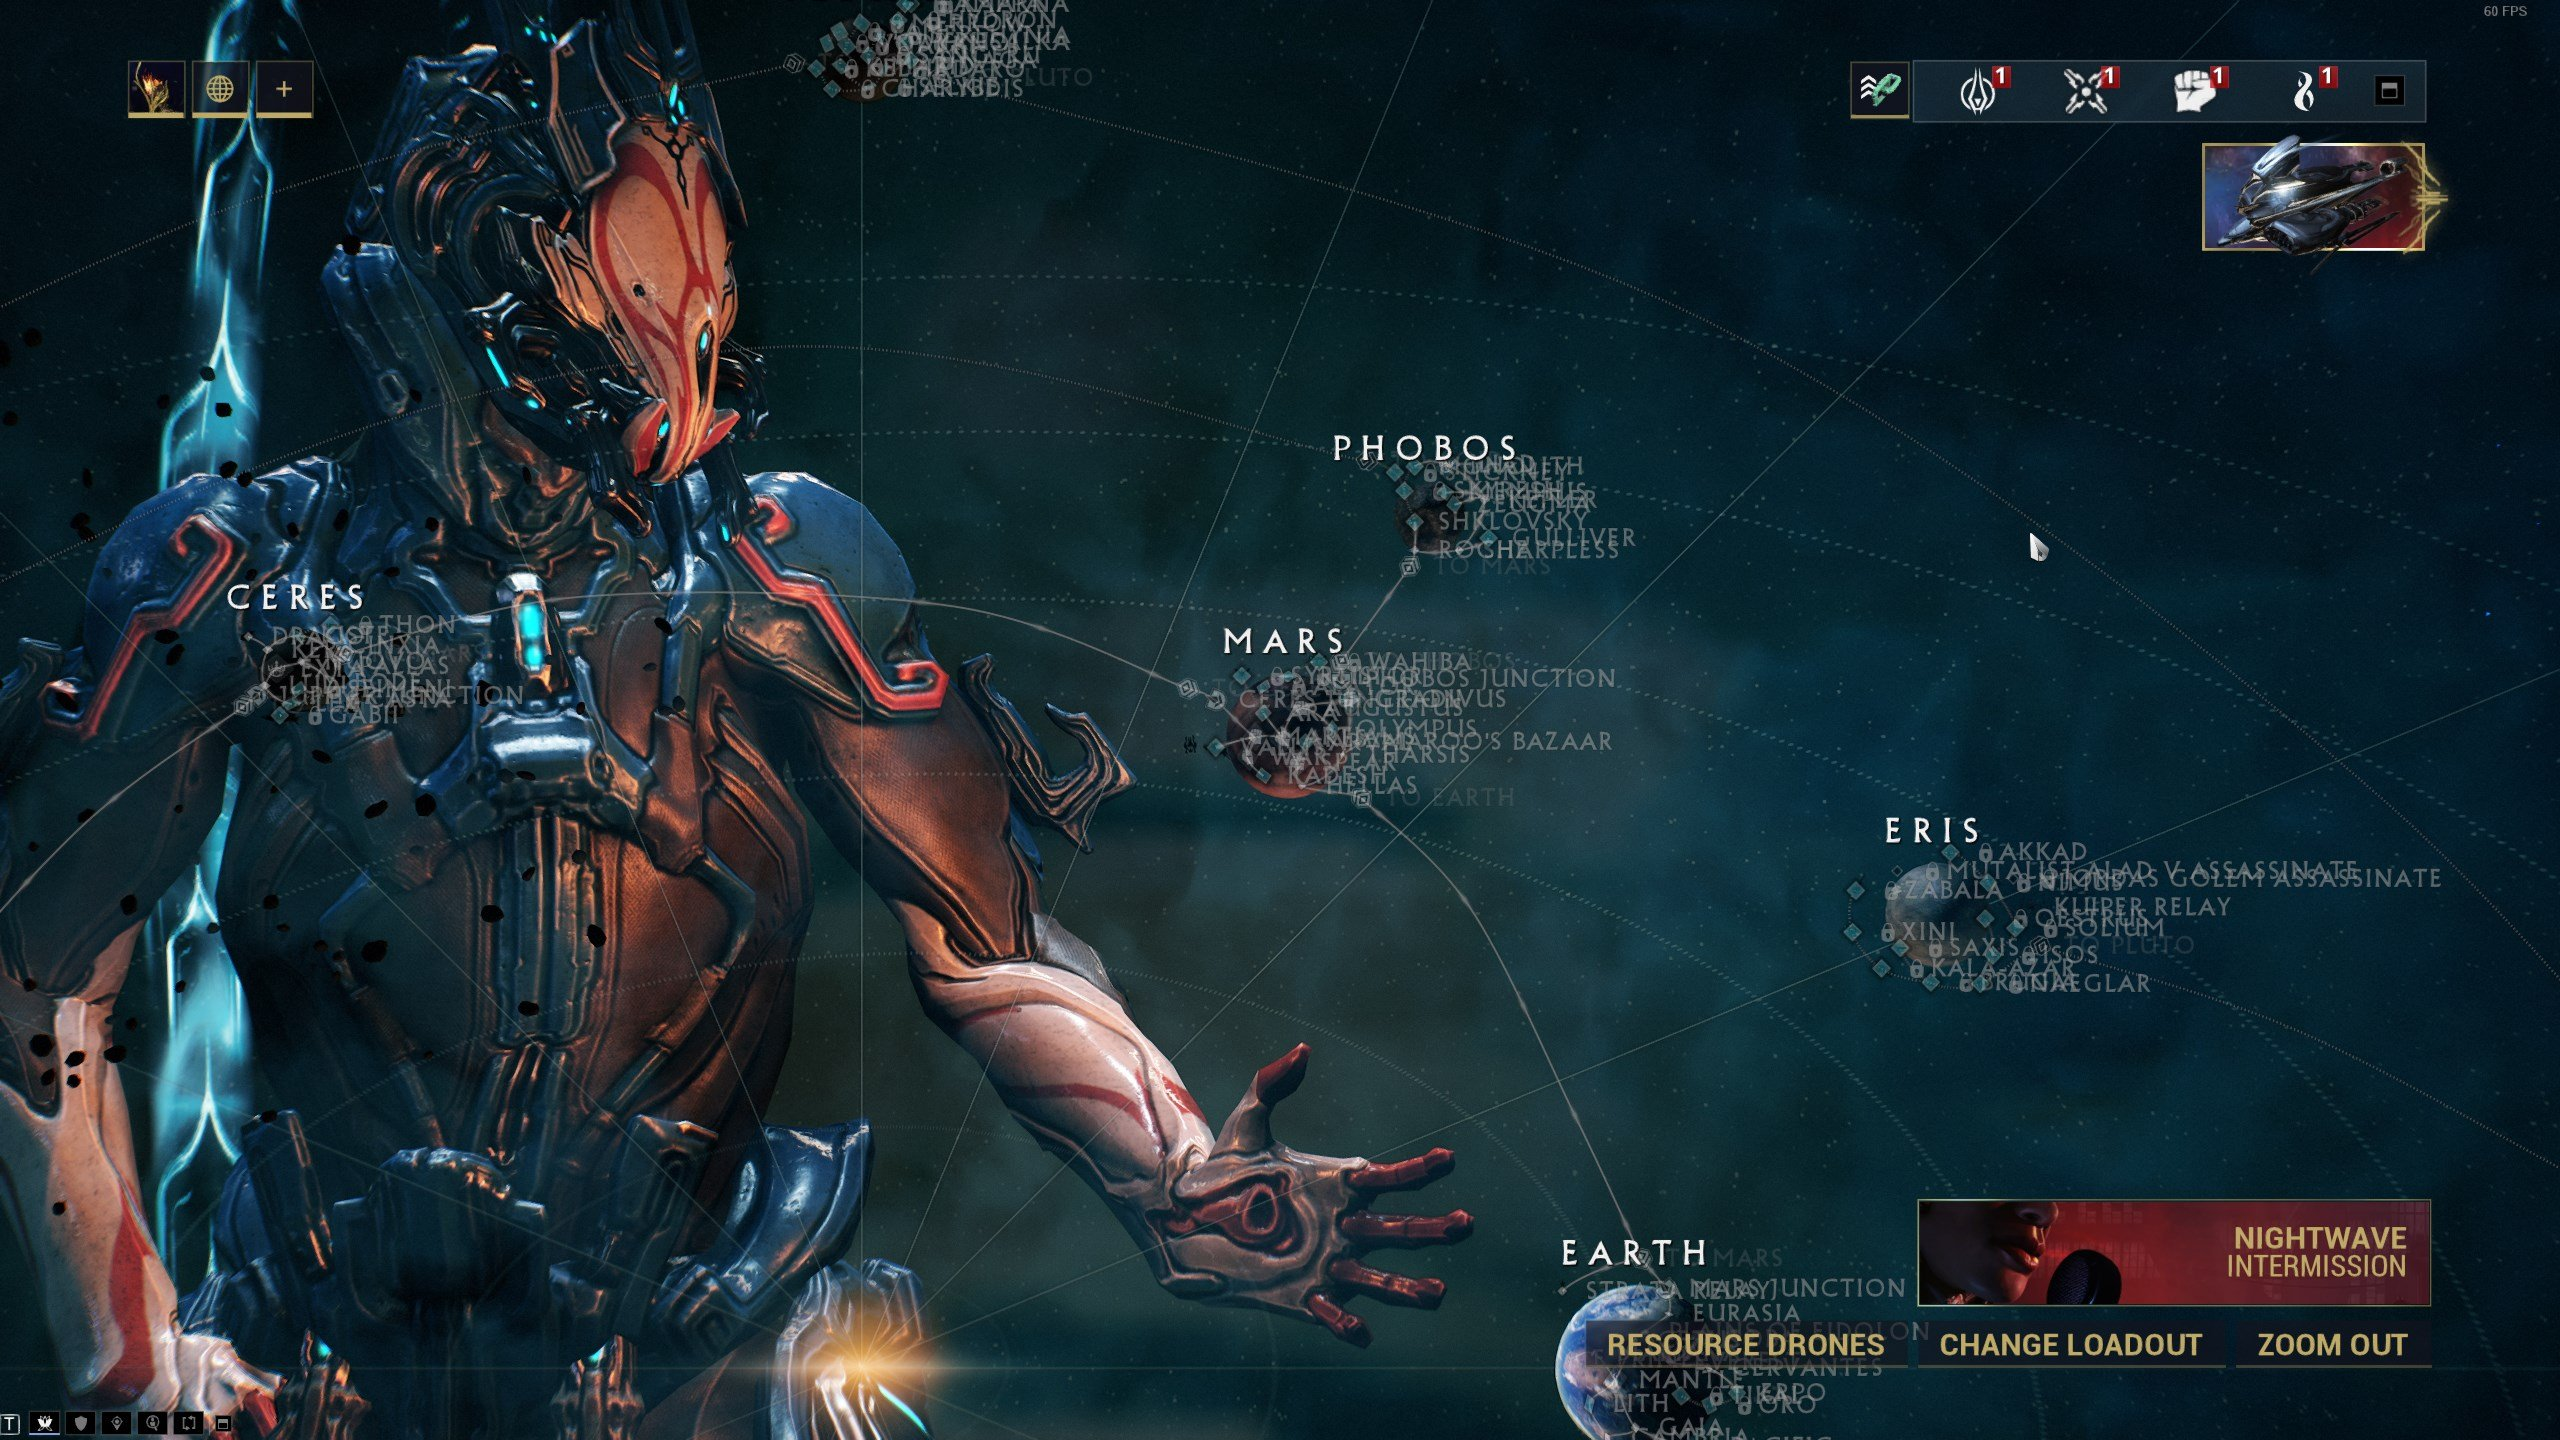 How to find Empyrean missions in Warframe Empyrean